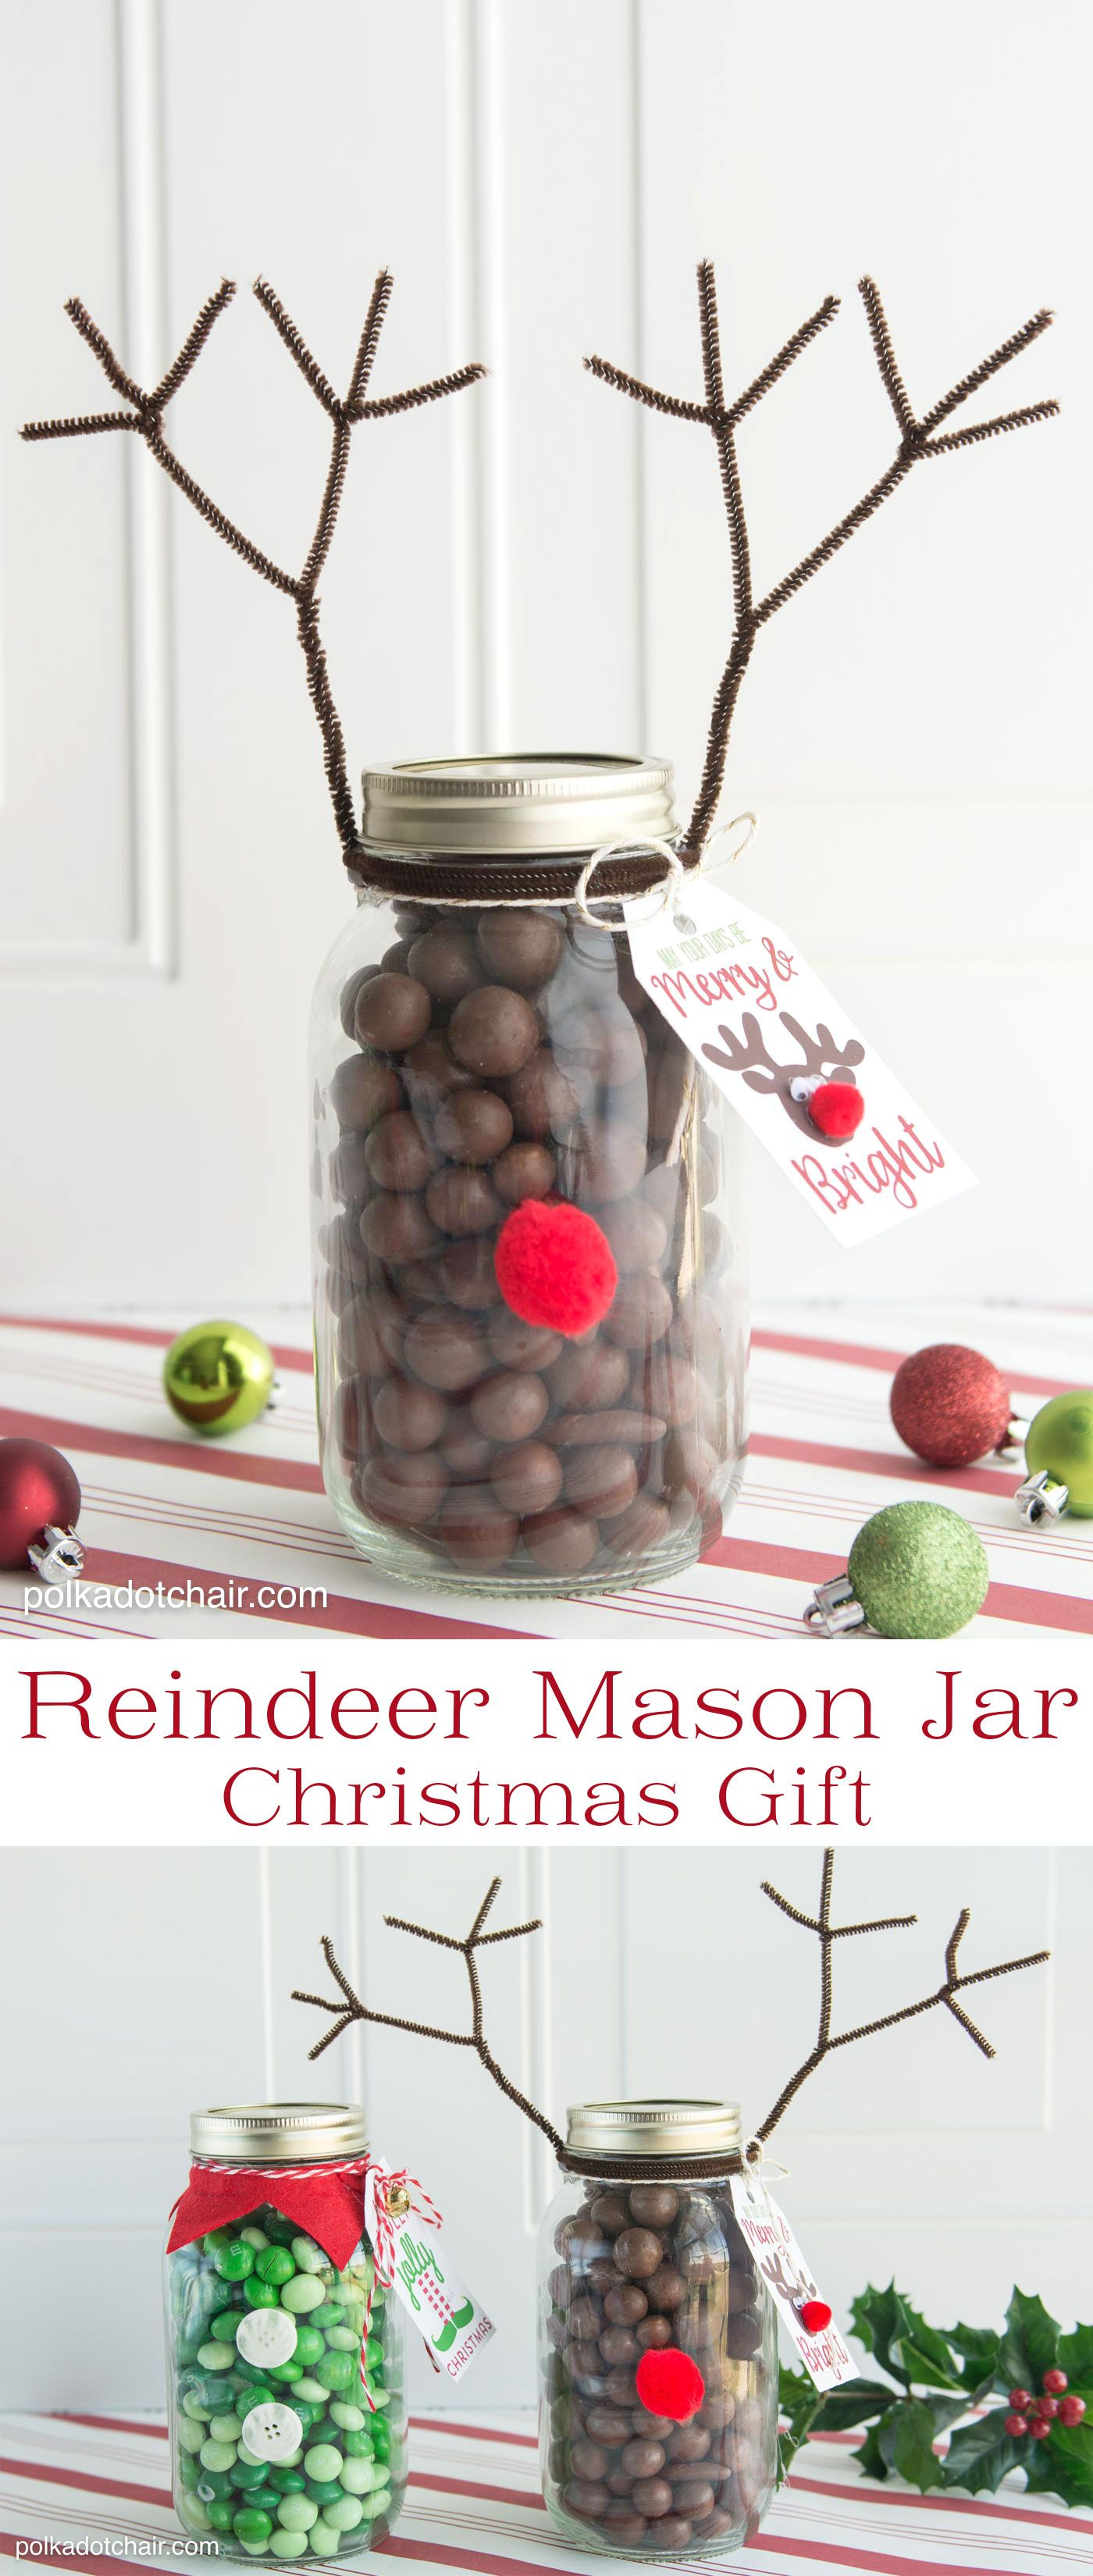 Reindeer Christmas Mason Jar Gift Idea | Pinterest | Mason jar ...